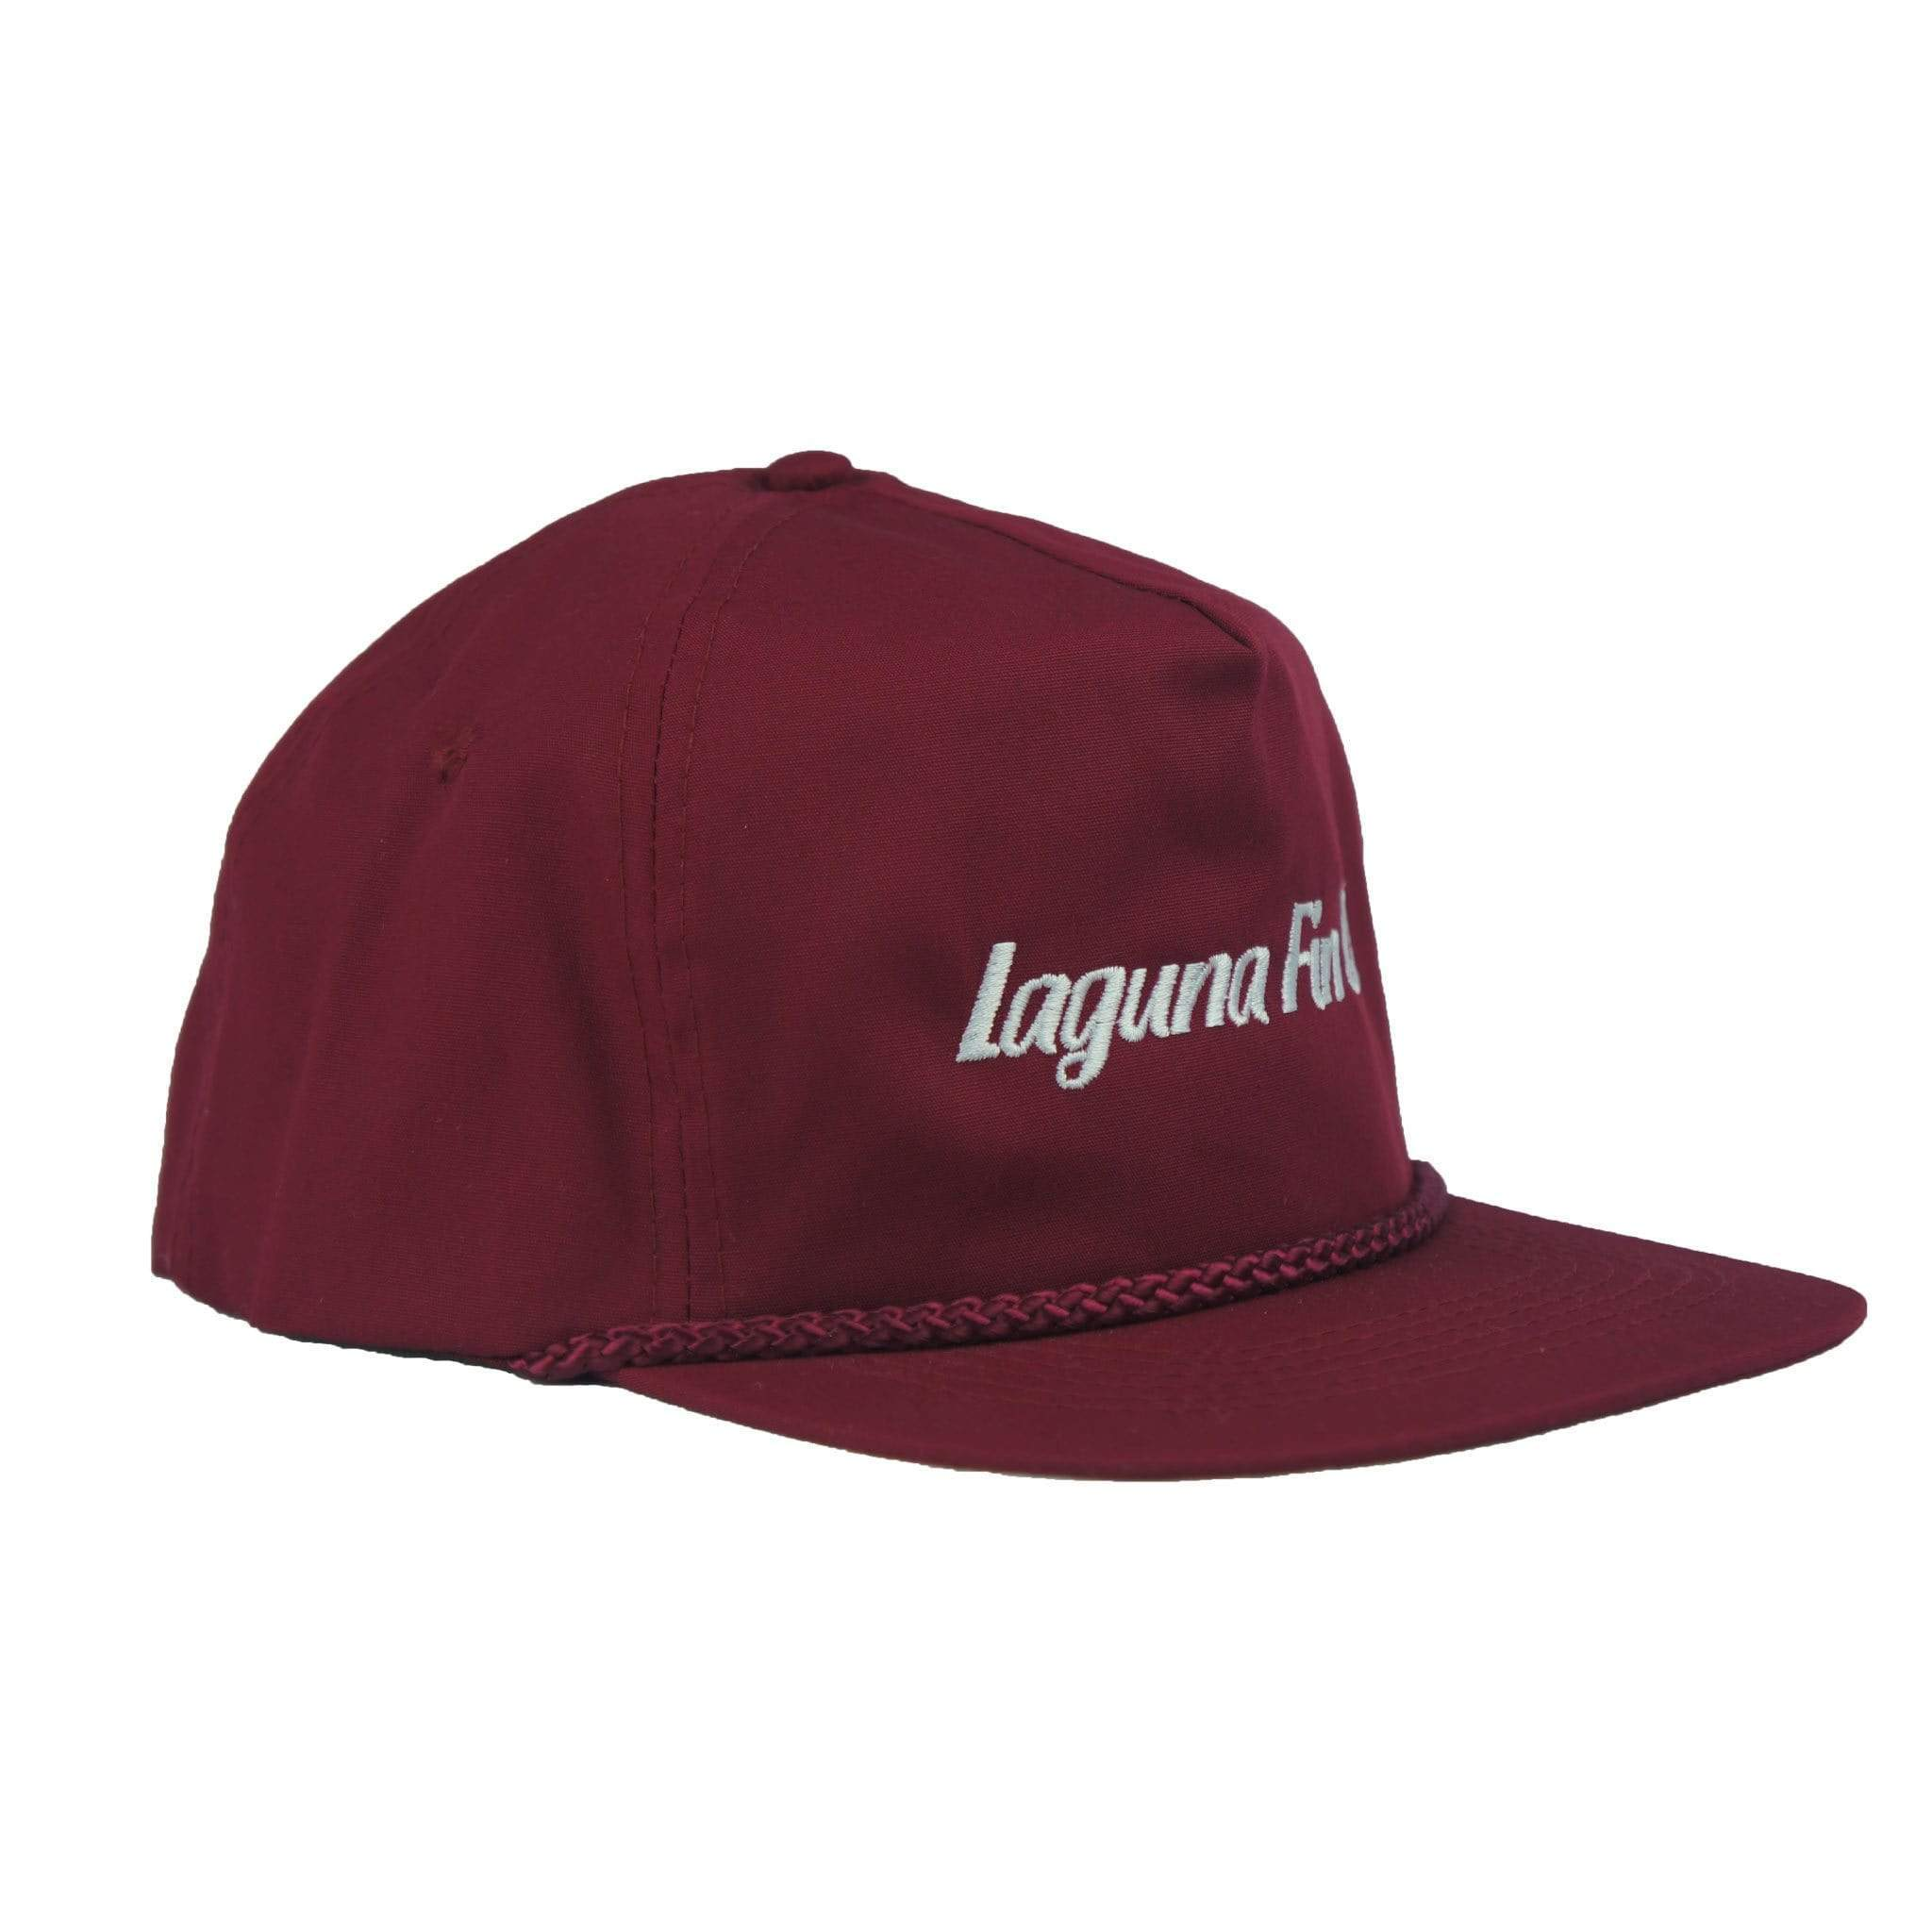 Laguna Fin Co. Hats